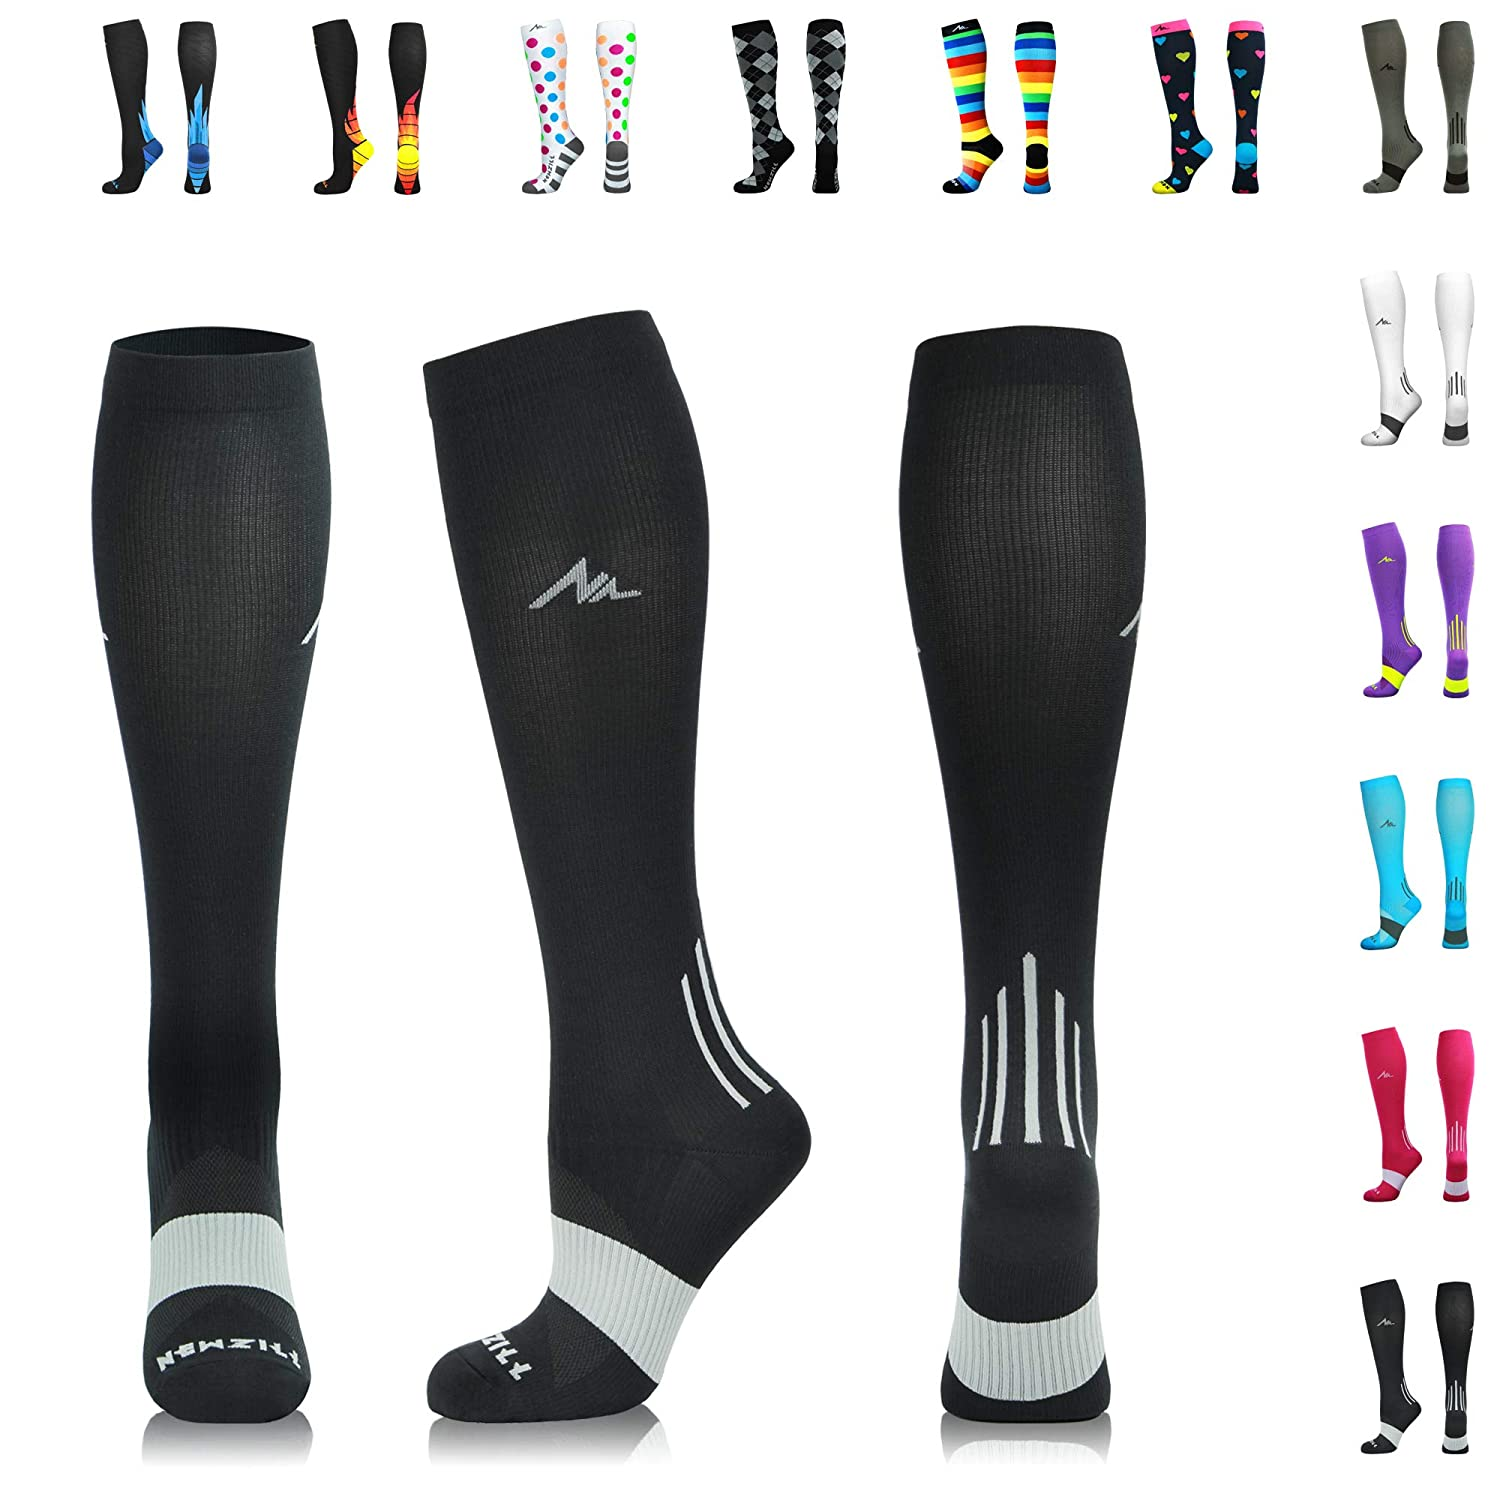 eefa21cfd NEWZILL Compression Socks (20-30mmHg) for Men   Women - Best Stockings for  Running